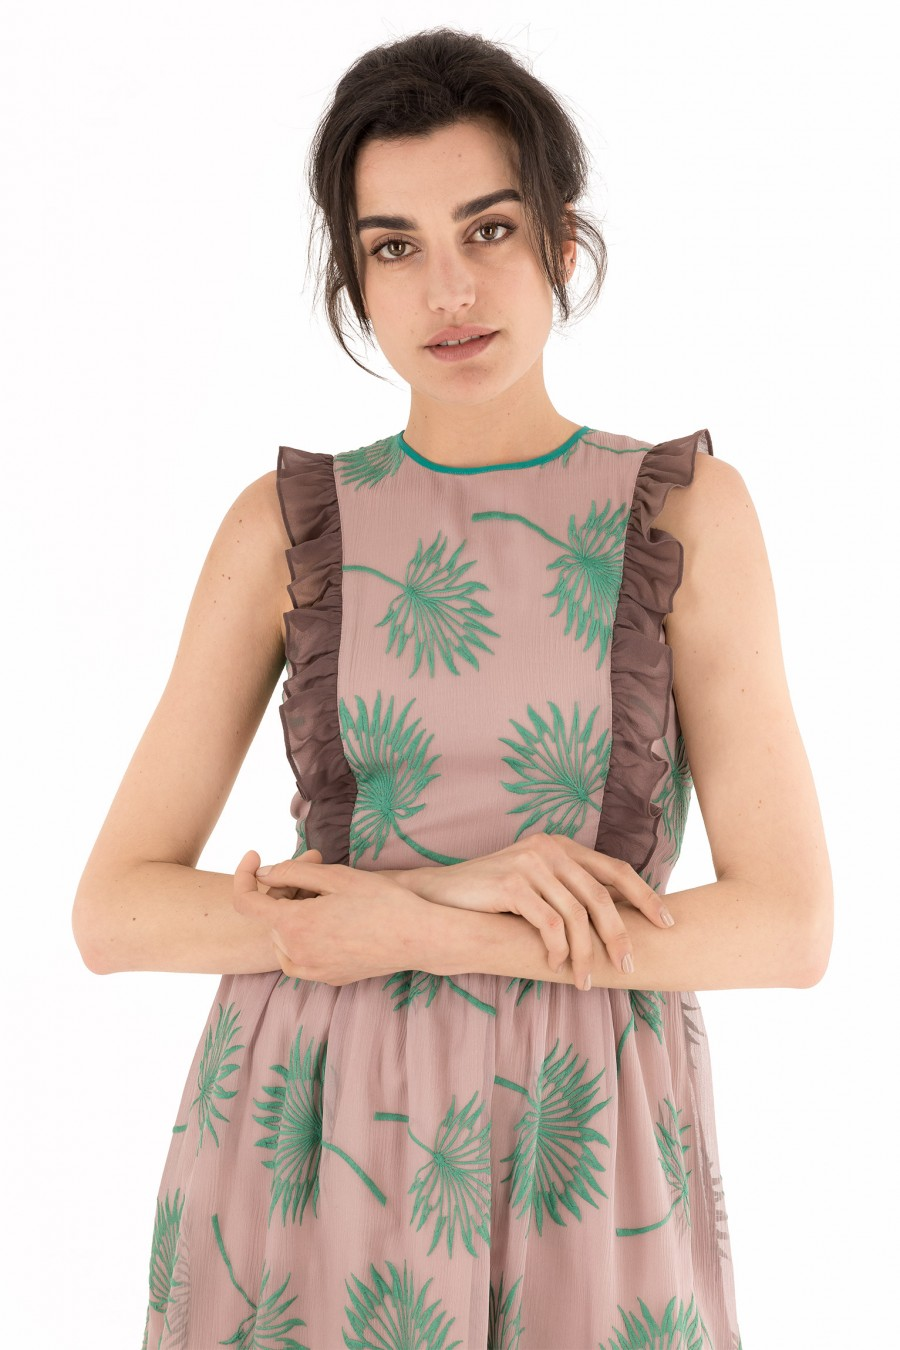 Dusty rose dress with embroidered ferns